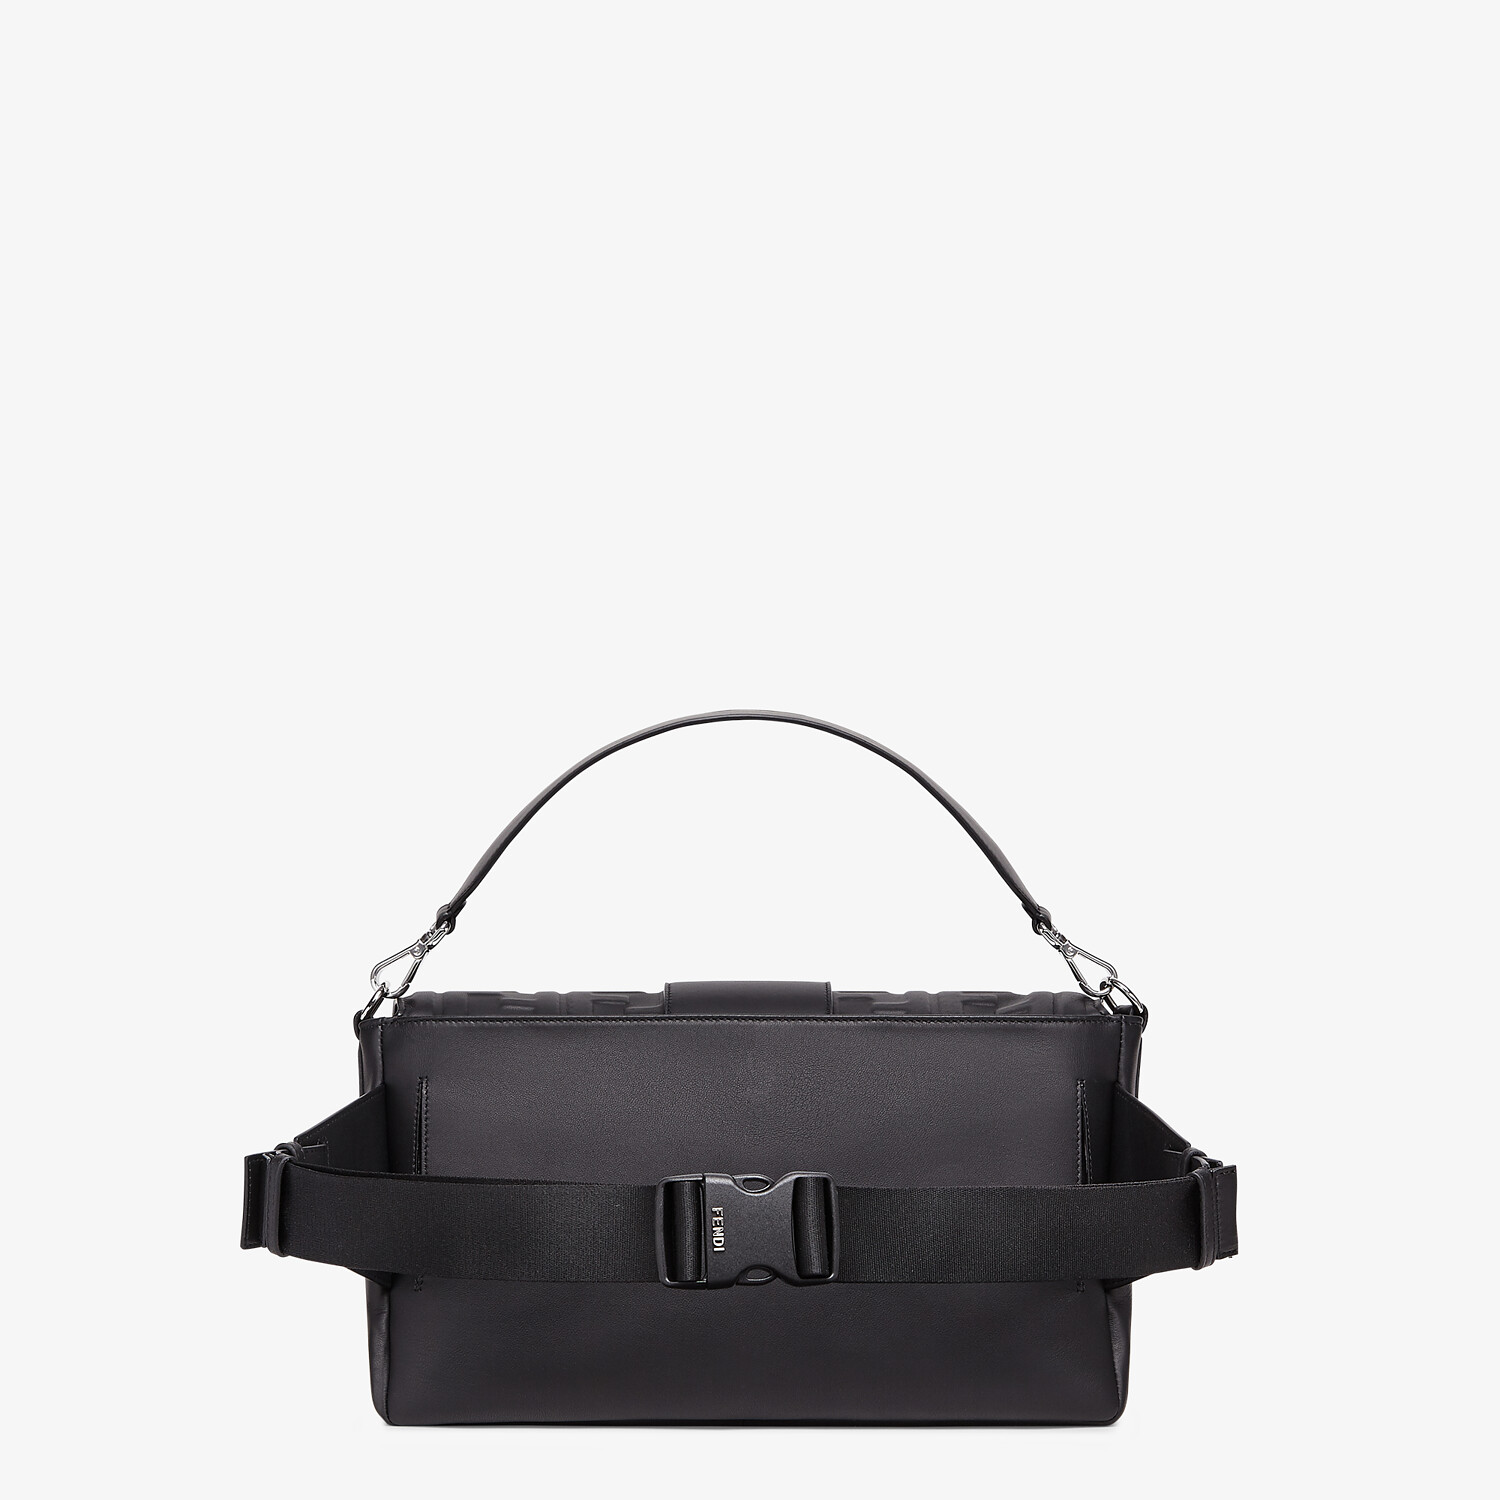 FENDI BAGUETTE LARGE - Black nappa leather bag - view 3 detail